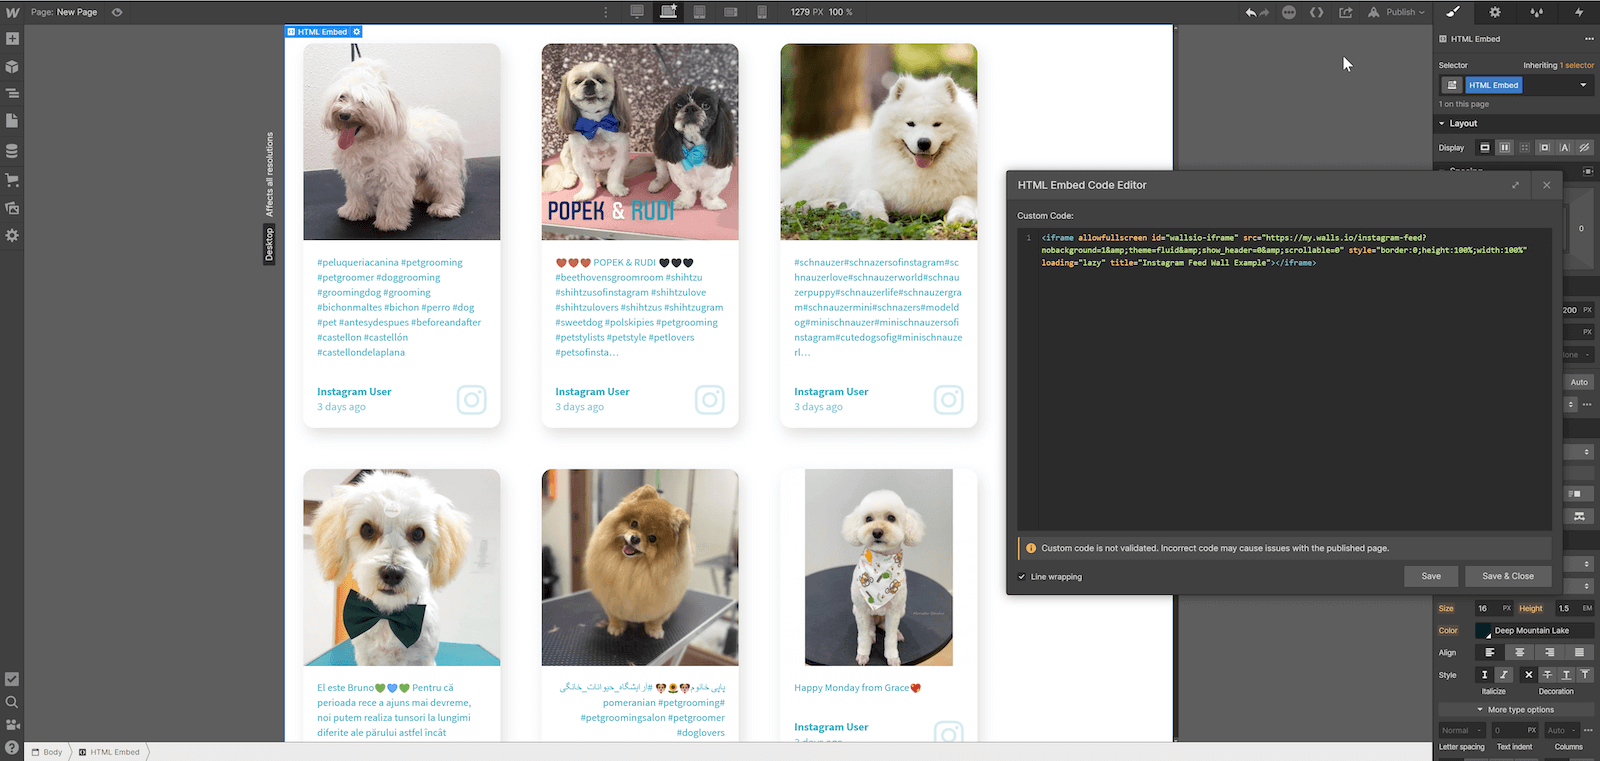 Screenshot showing a page on Webflow with an embedded social wall of cute dog pics. On the right hand side, you can see the embed code added to the HTML Embed Code Editor.